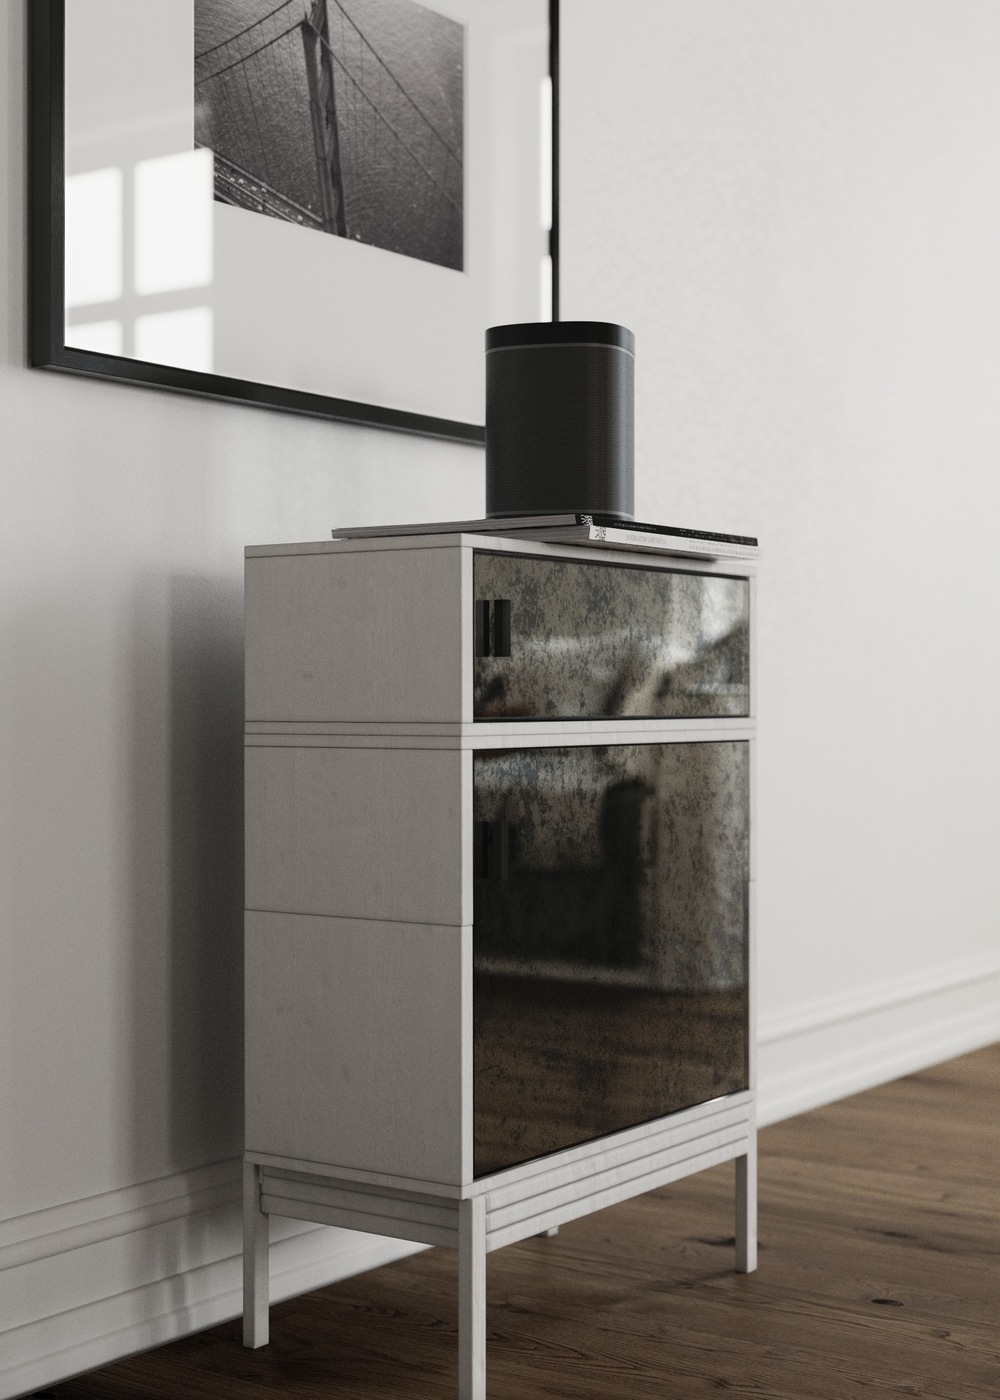 Side view of cabinet